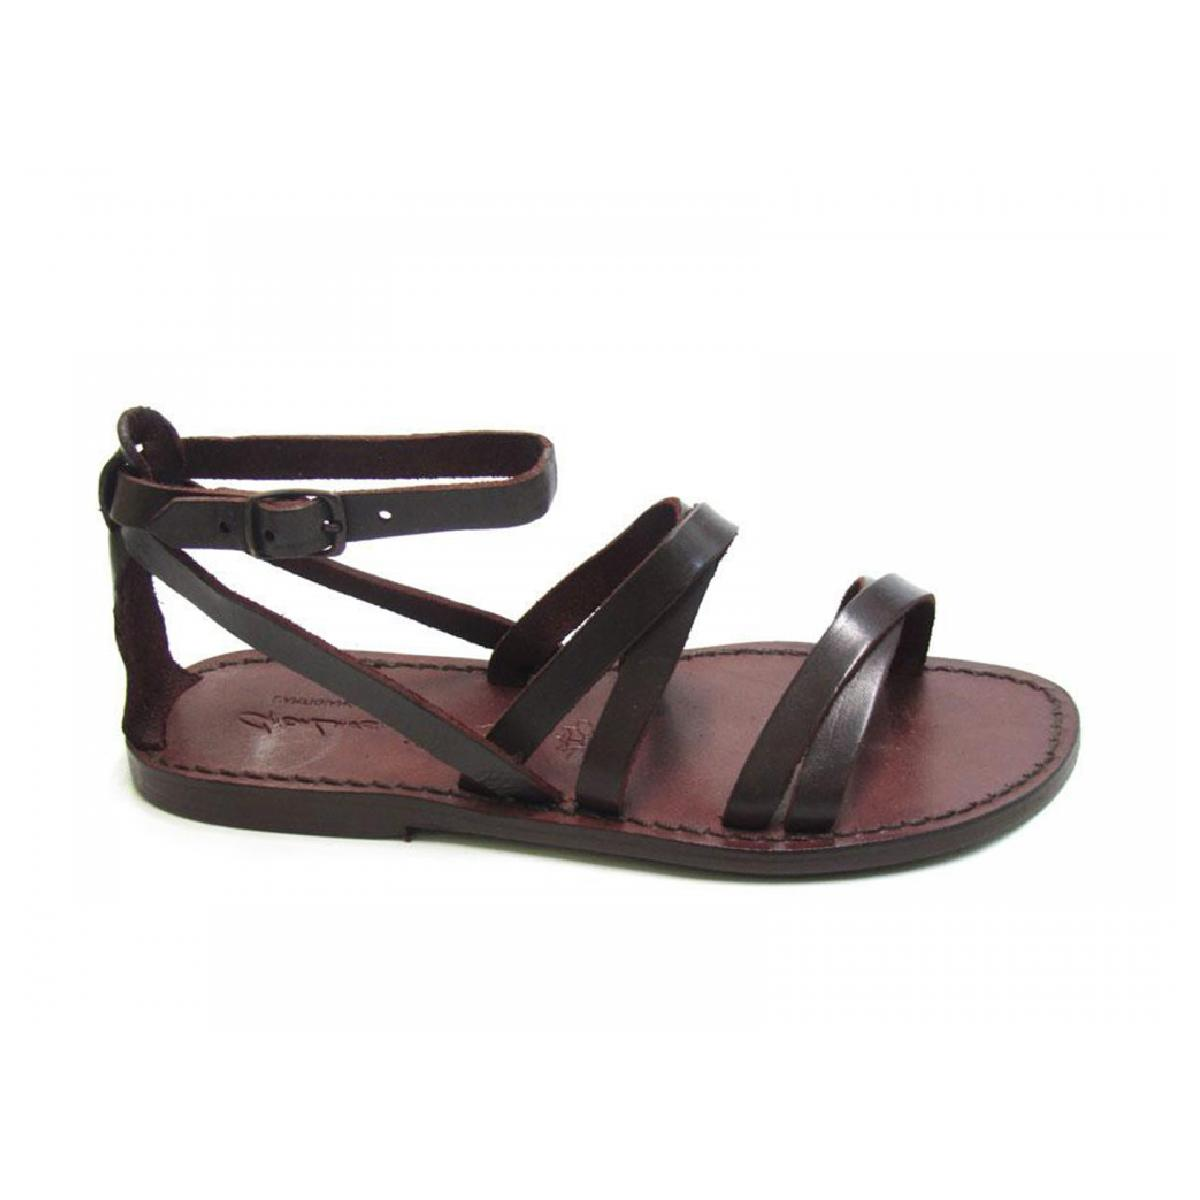 Popular Women39s Flat Sandals Handmade In Tan And Black Leather  Gianluca  The L